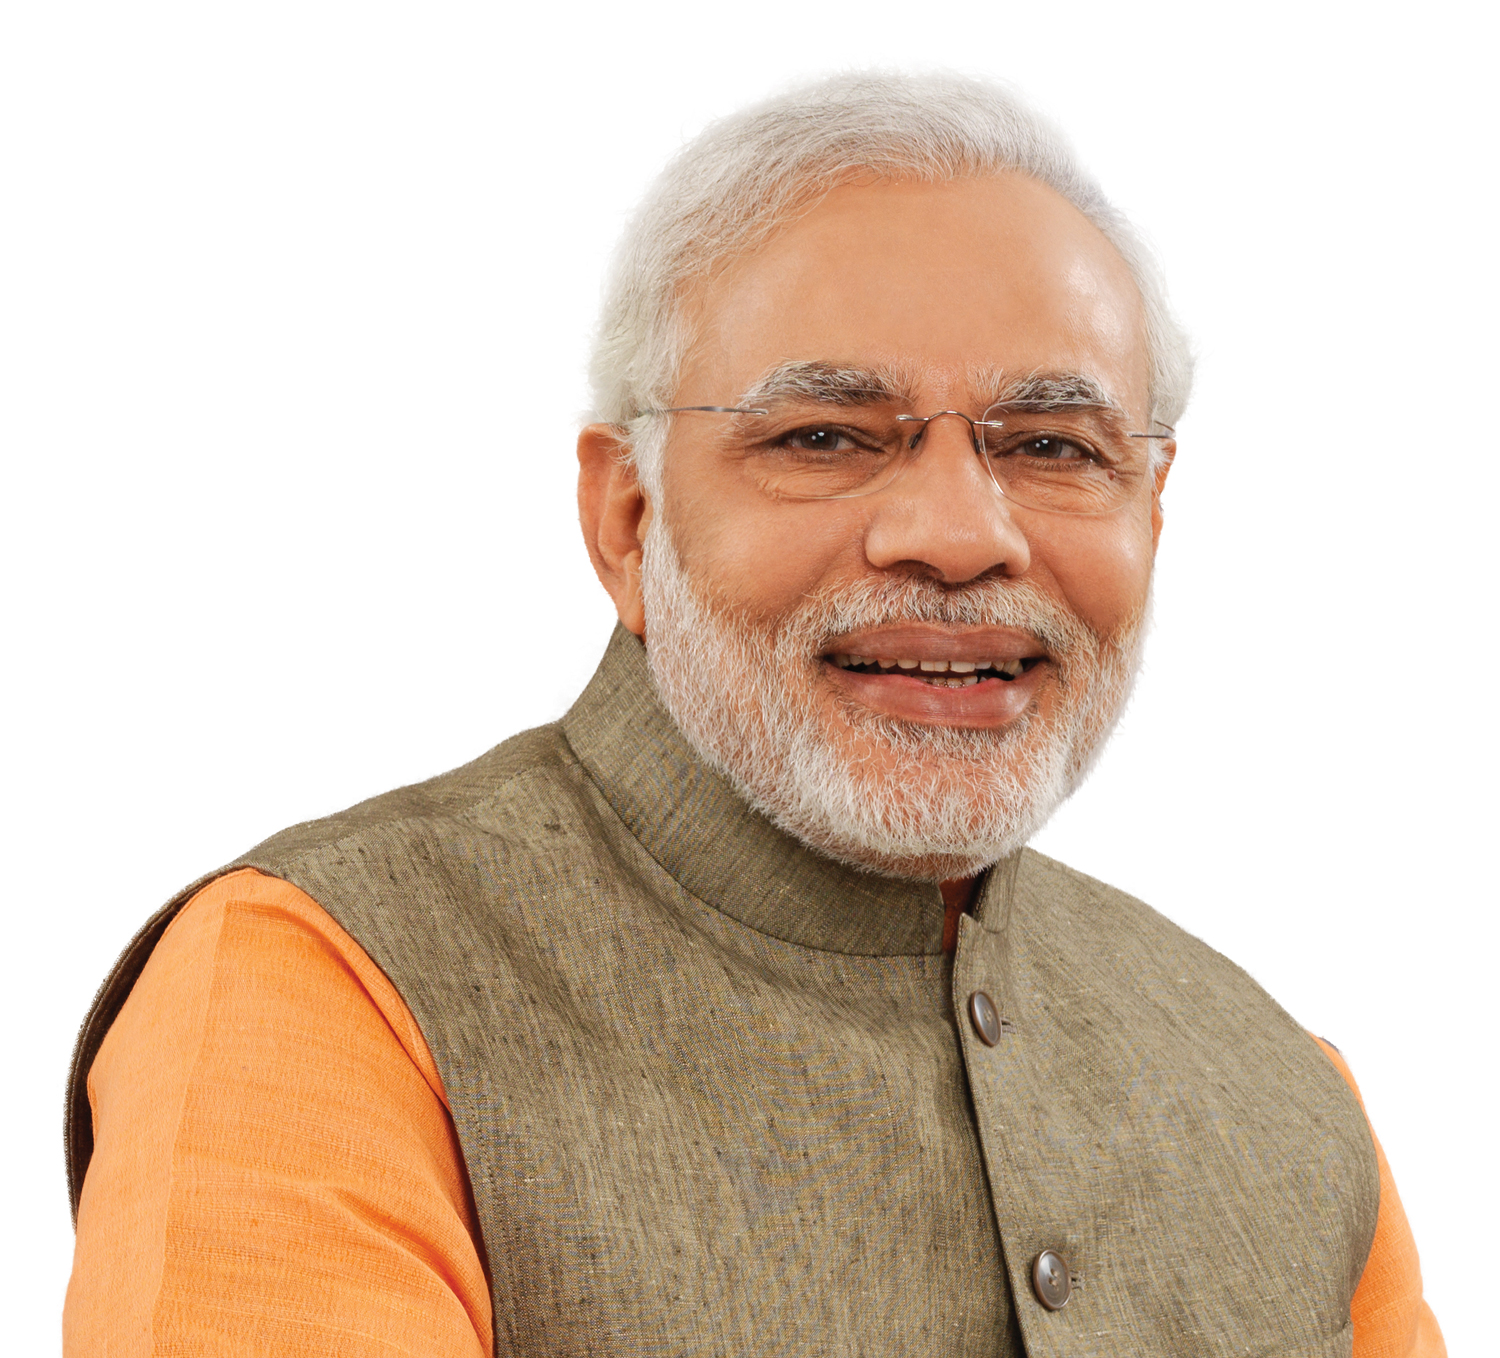 American research states Modi as most popular figure of Indian politics